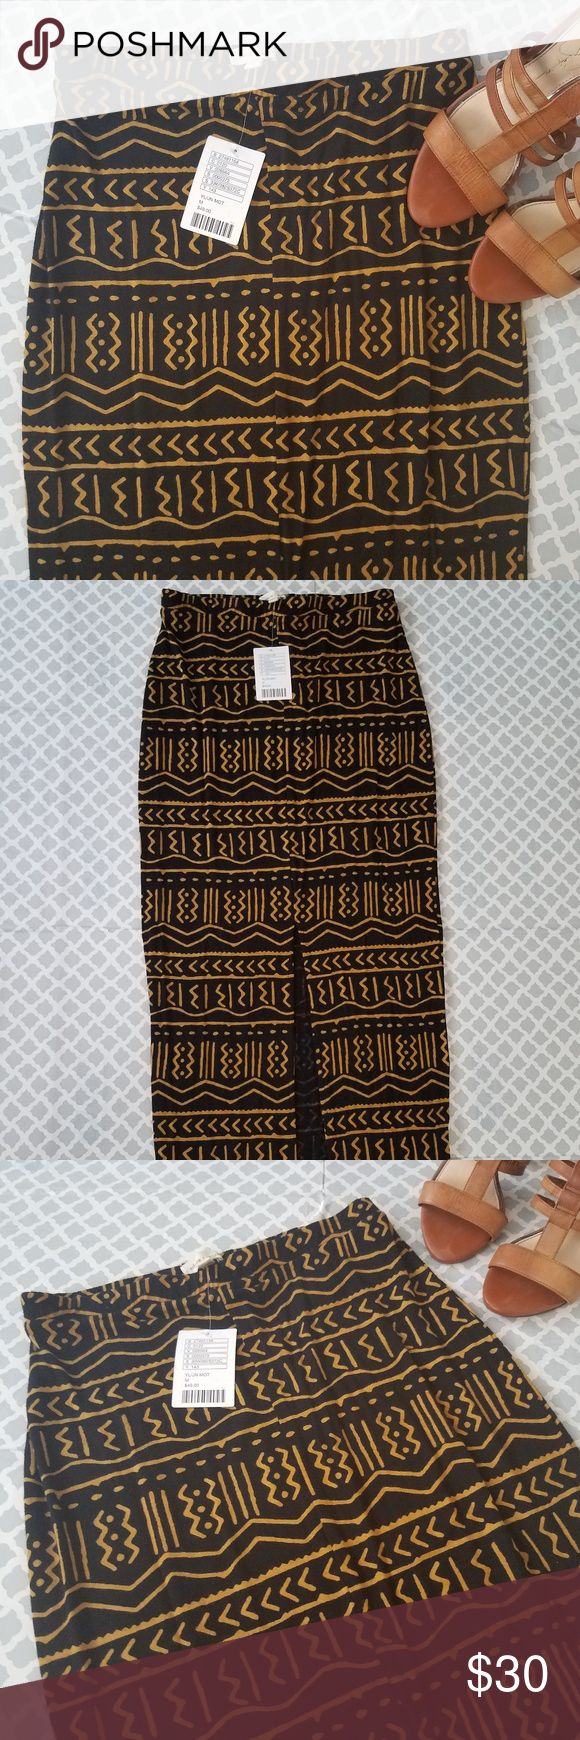 NWT Silence + Noise Black Tribal Maxi Skirt Silence & Noise sold at Urban Outfitters Size M New WIth Tags In perfect condition Maxi style skirt with a center slit silence + noise Skirts Maxi